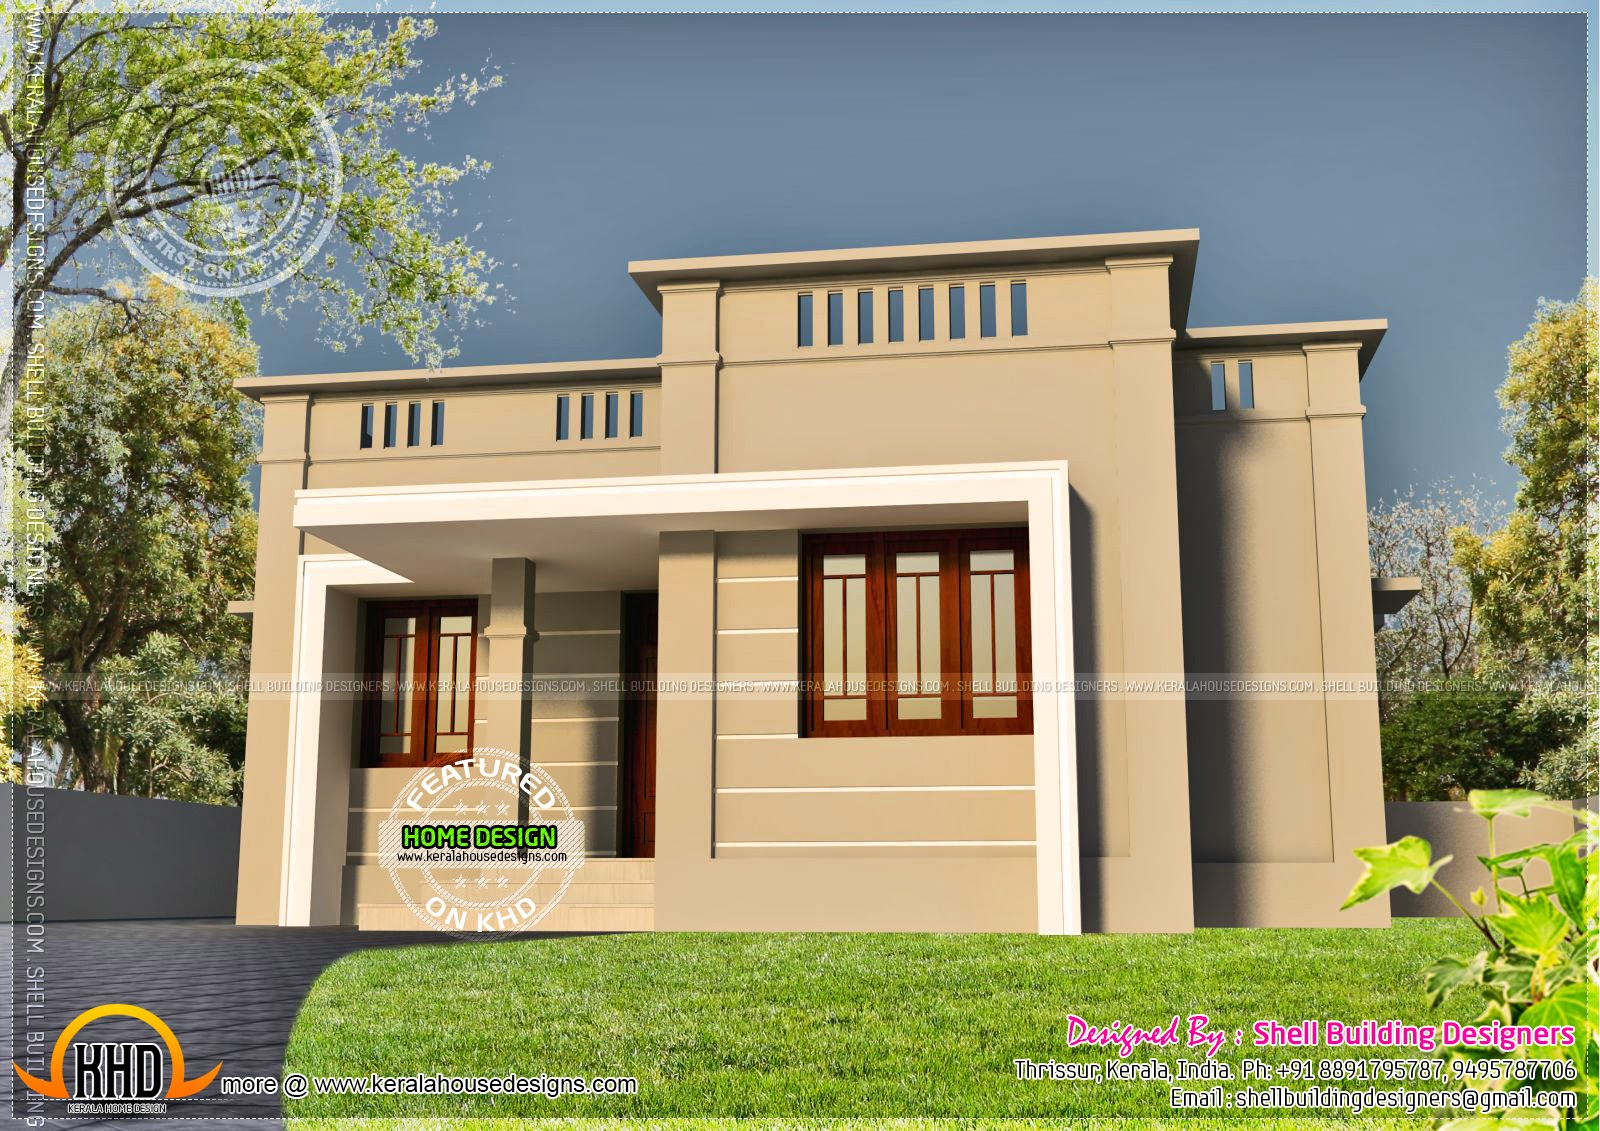 Very small house exterior kerala home design and floor plans for Small frontage house designs